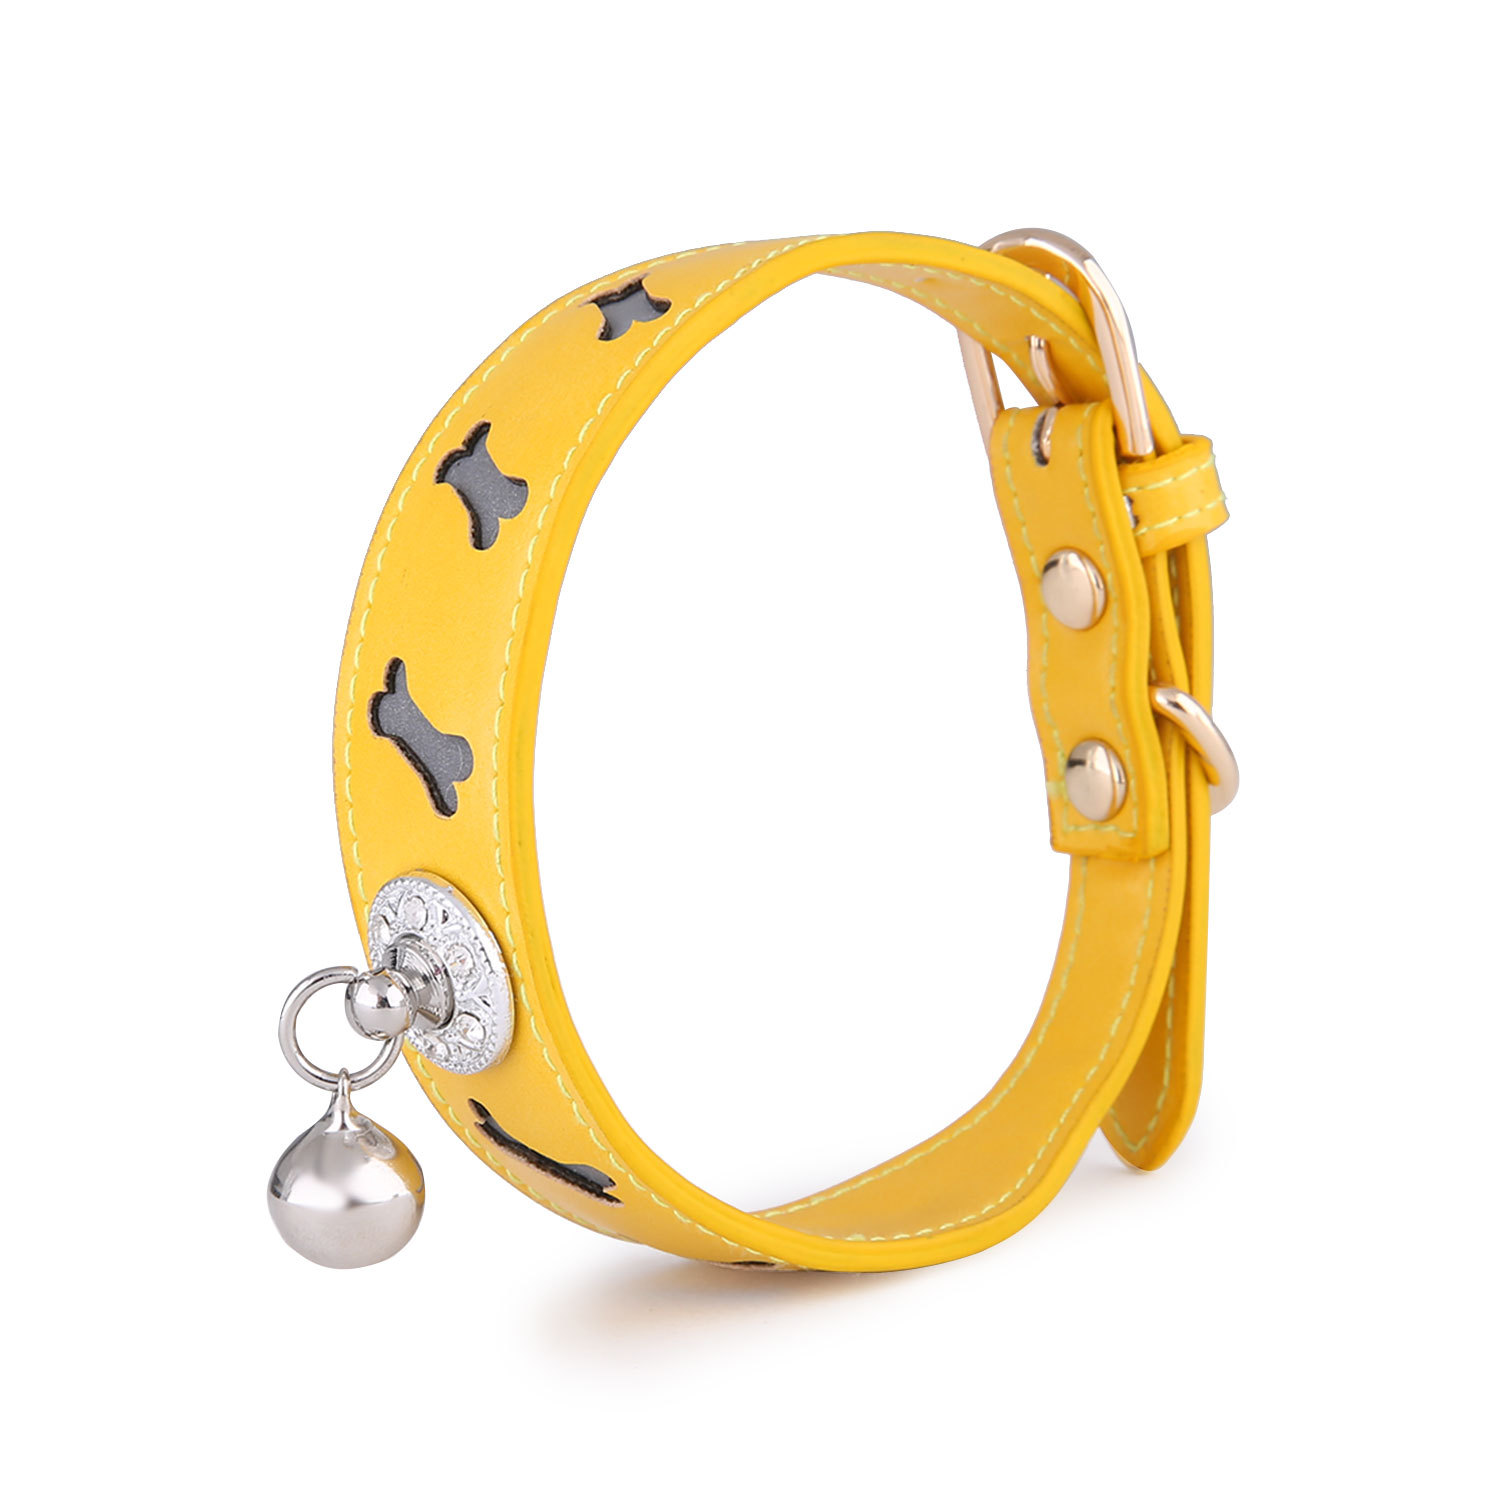 2020 New Products Pet Collar Cool Bone Shape Bell Pet Cat Dog Reflective Neck Ring